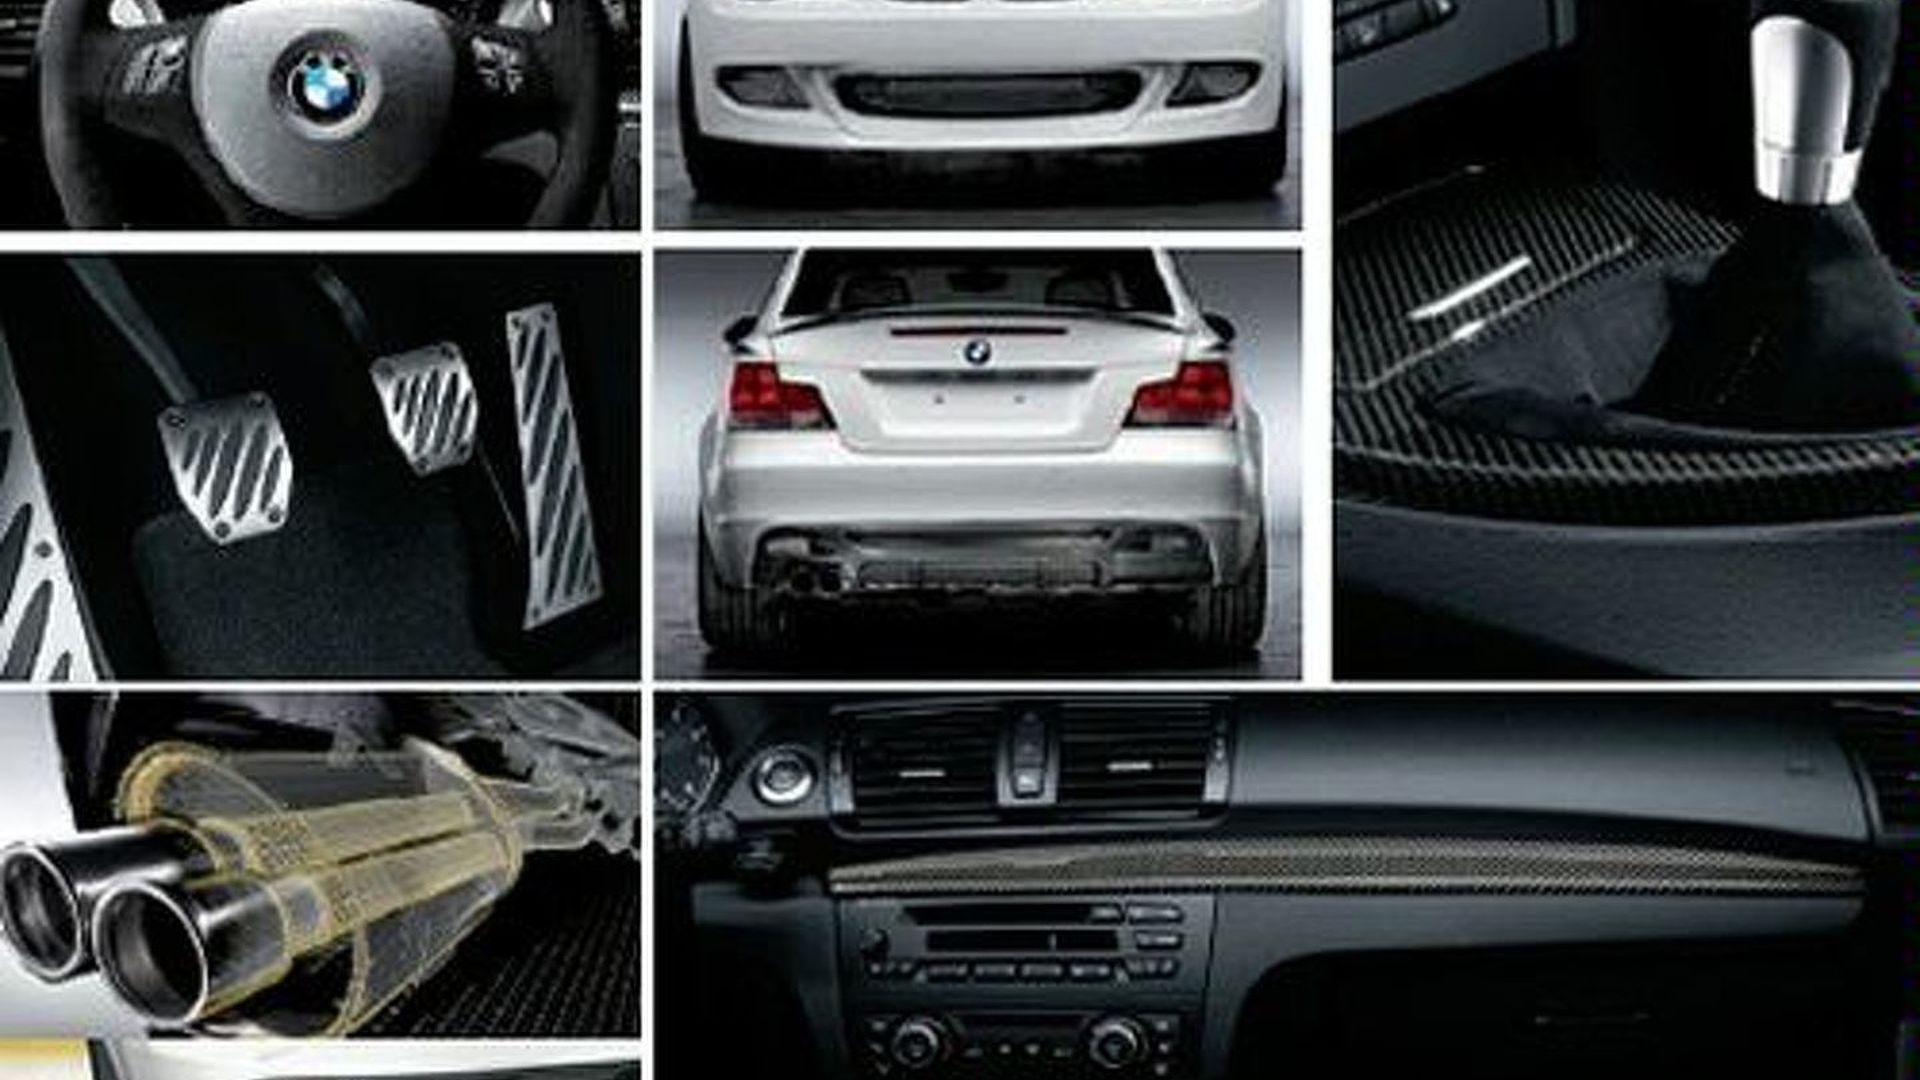 Bmw Aftermarket Parts >> Bmw 1 Series Coupe Performance Parts Catalogue Leaked